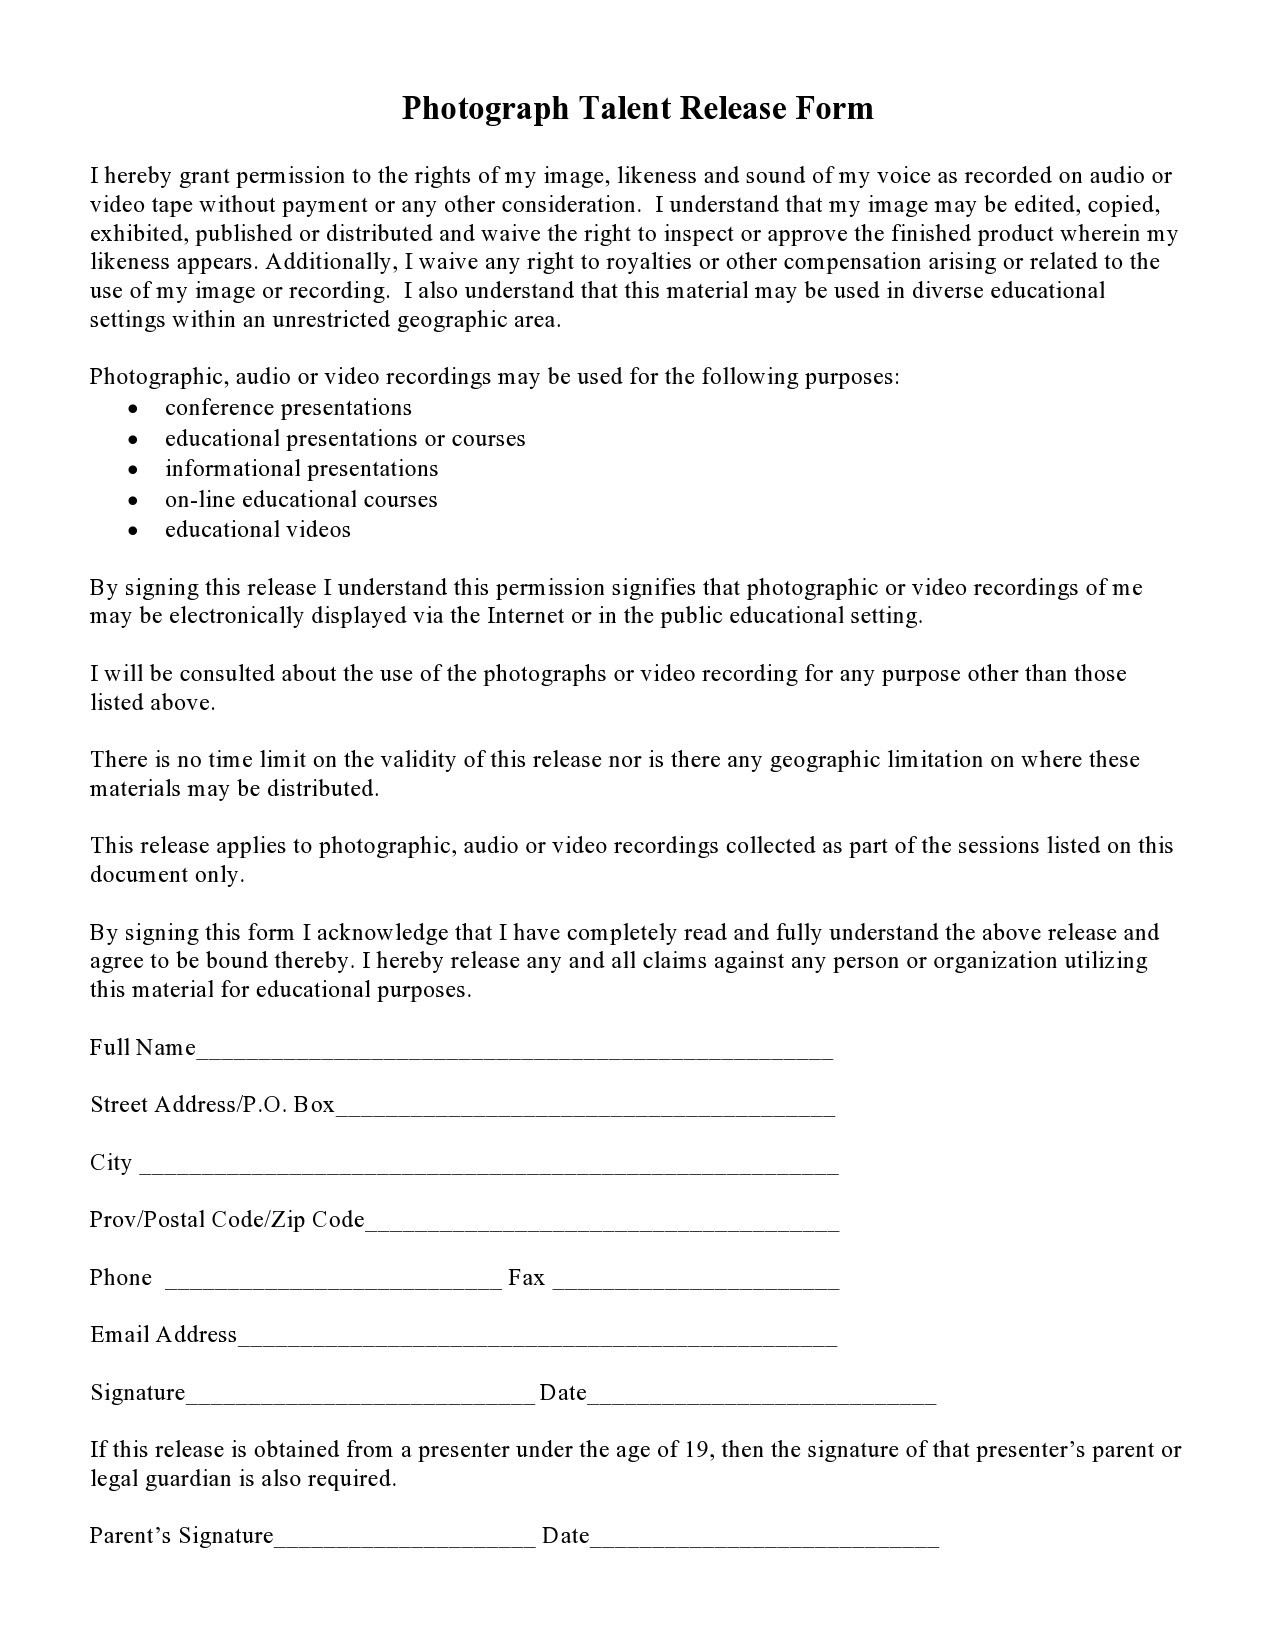 Free talent release form 13